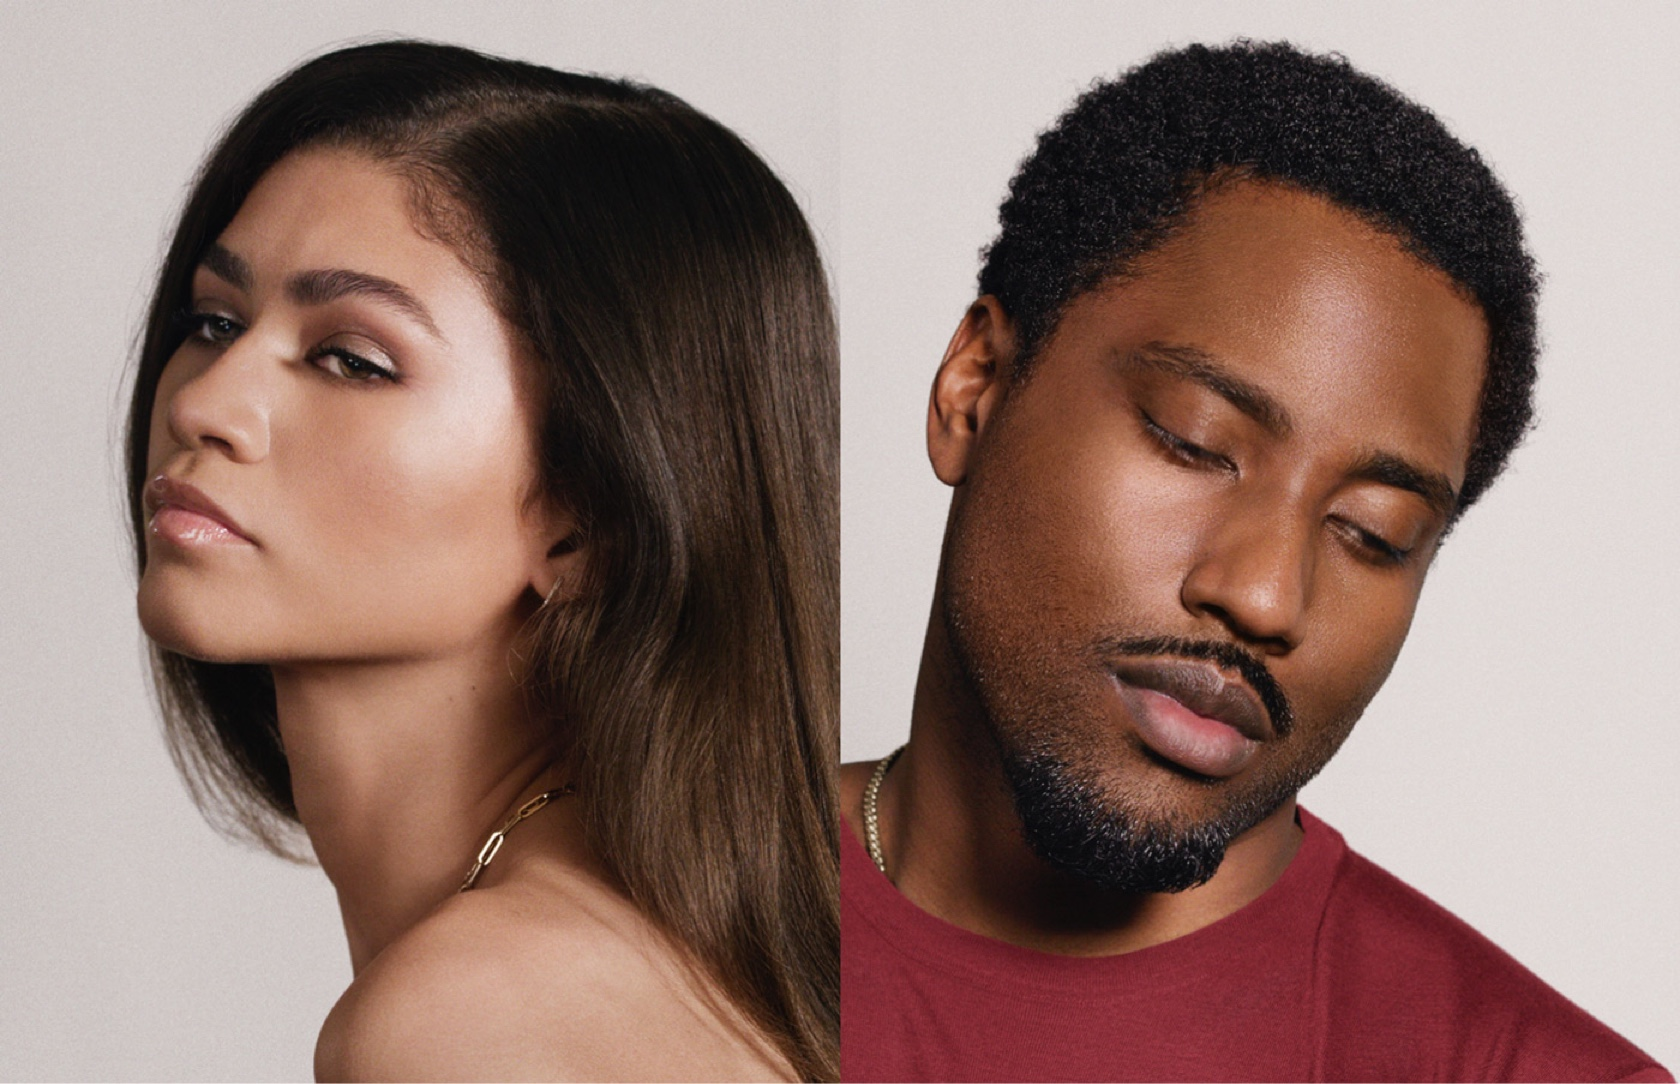 Portraits of Zendaya and John David Washington. Zendaya appears in profile with her hair down. Washington, wearing a red sweater, casts his eyes downwards.